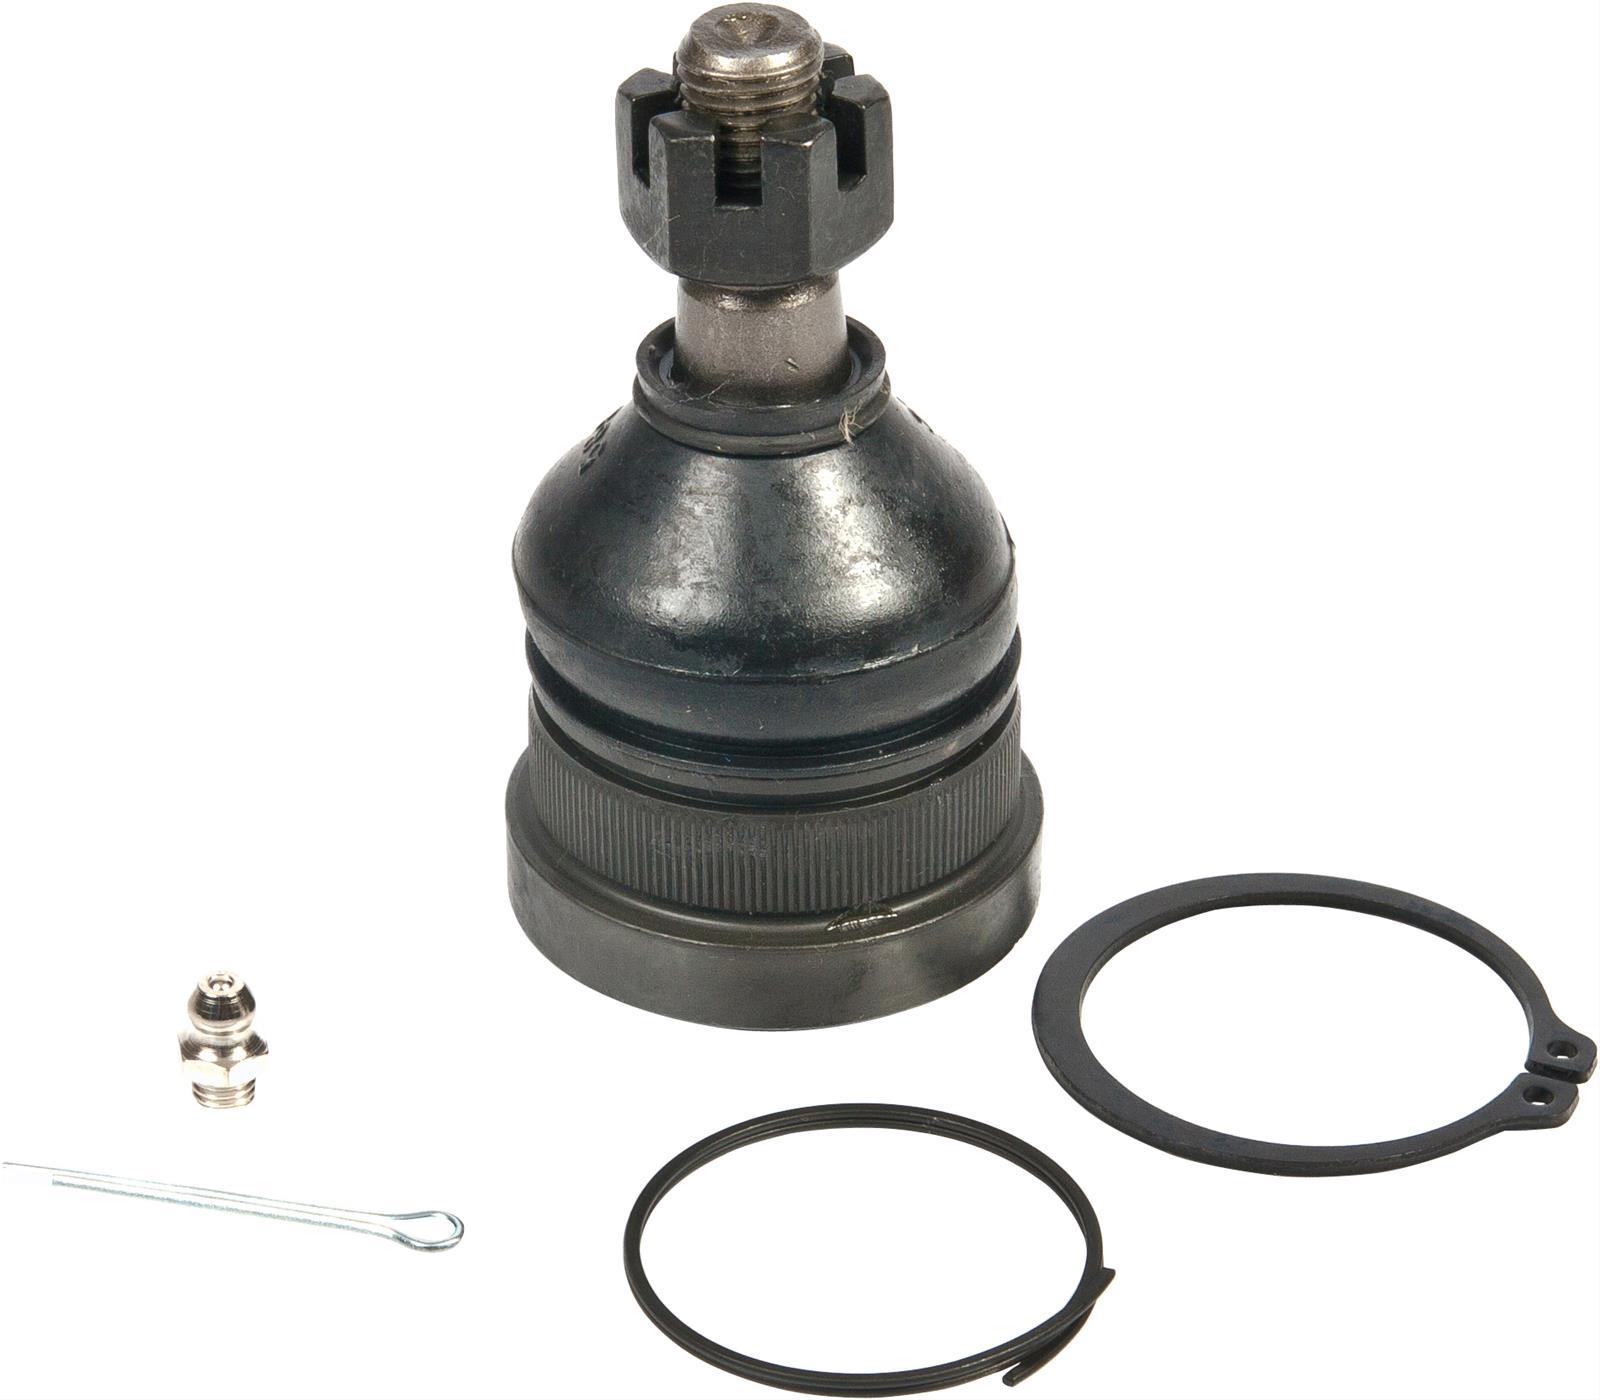 hight resolution of nissan xterra proforged ball joints 101 10309 free shipping on orders over 99 at summit racing